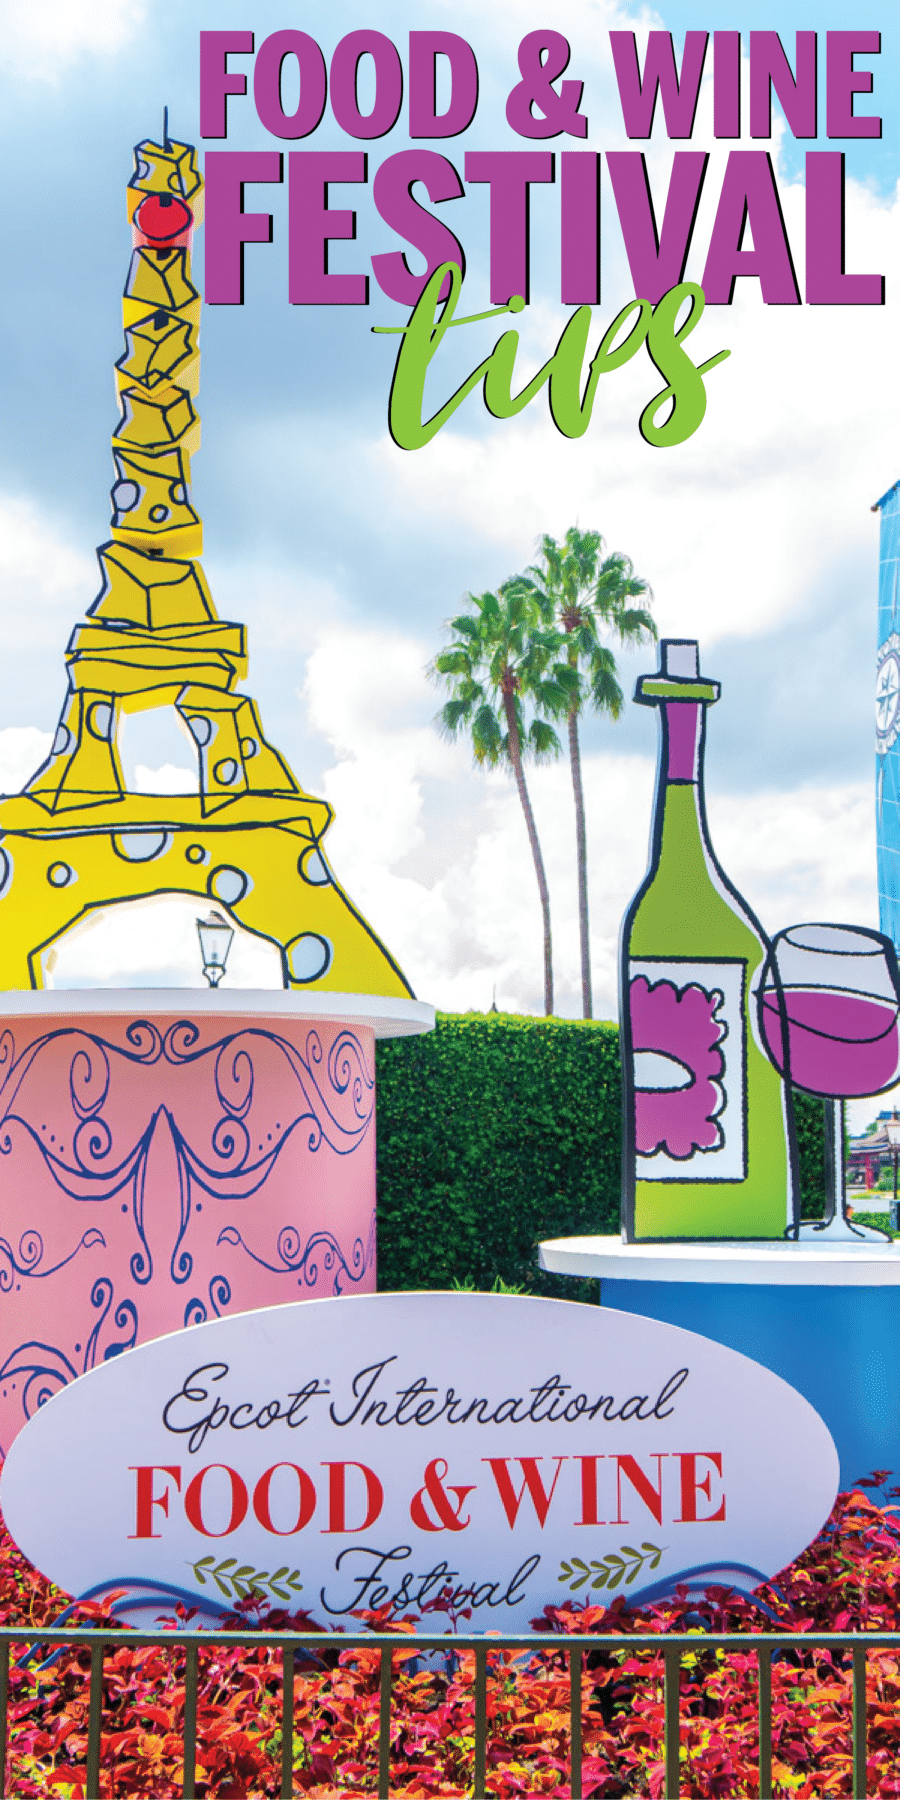 The ultimate guide to the Epcot food and wine 2019 festival! Full menu, concert lineup, tips and tricks, and more! Everything you need to check out the Disney food and wine festival this year!